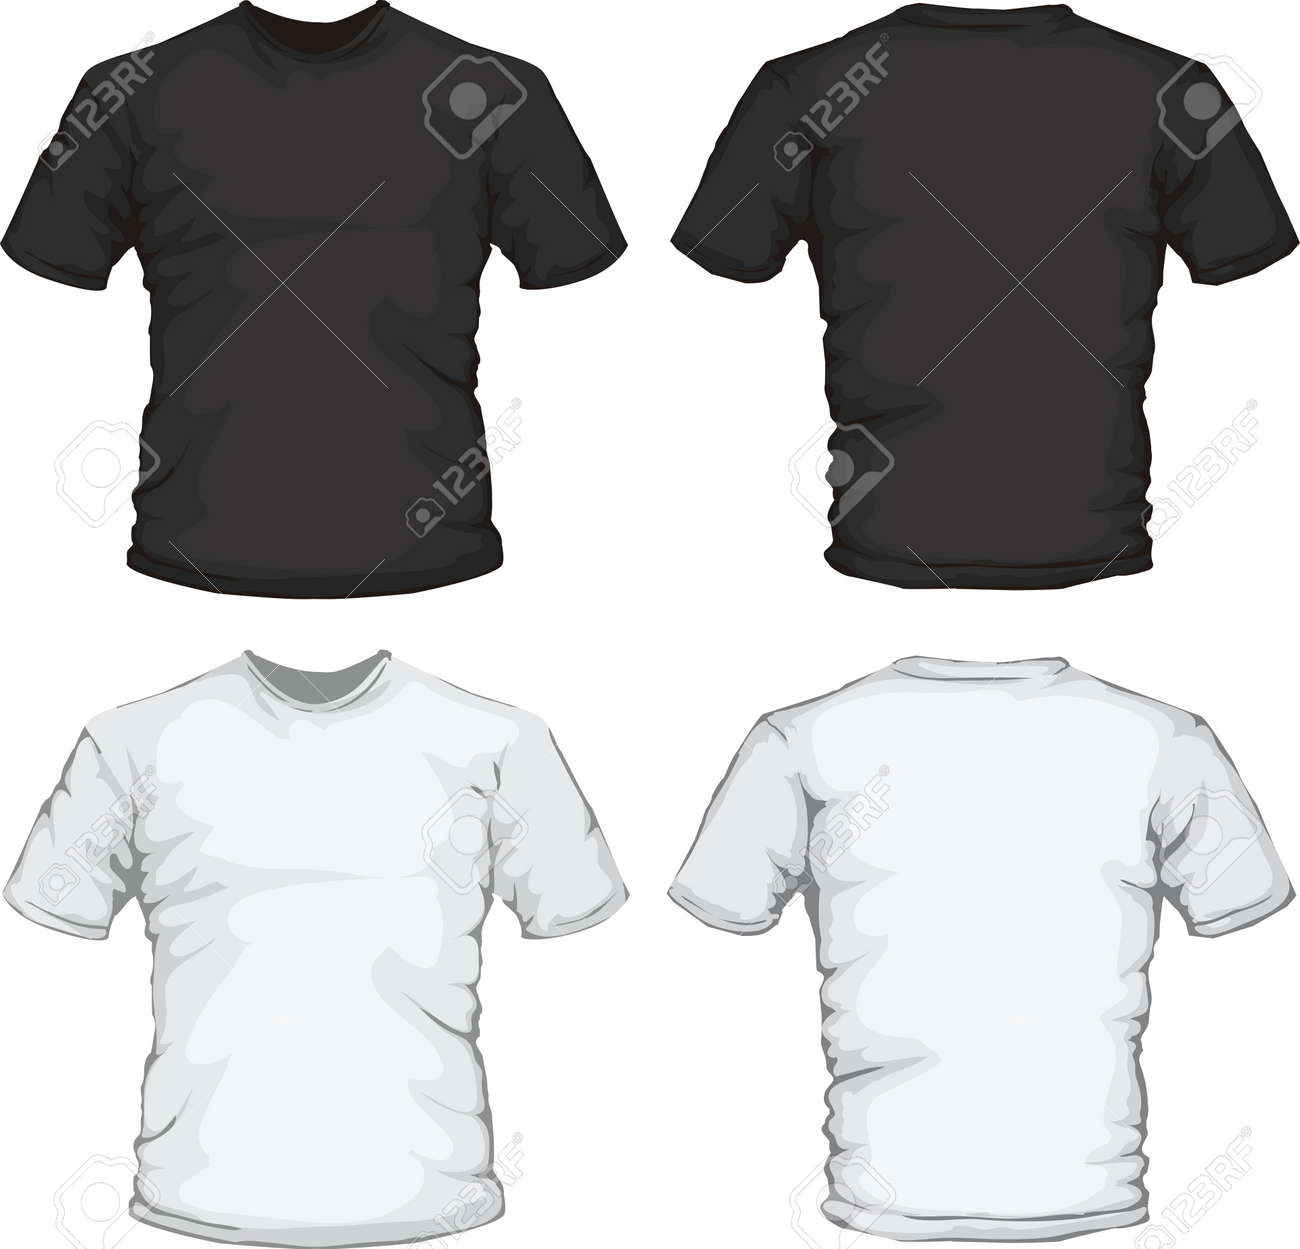 Black t shirt design template - Vector Vector Illustration Of Black And White Male Shirt Design Template